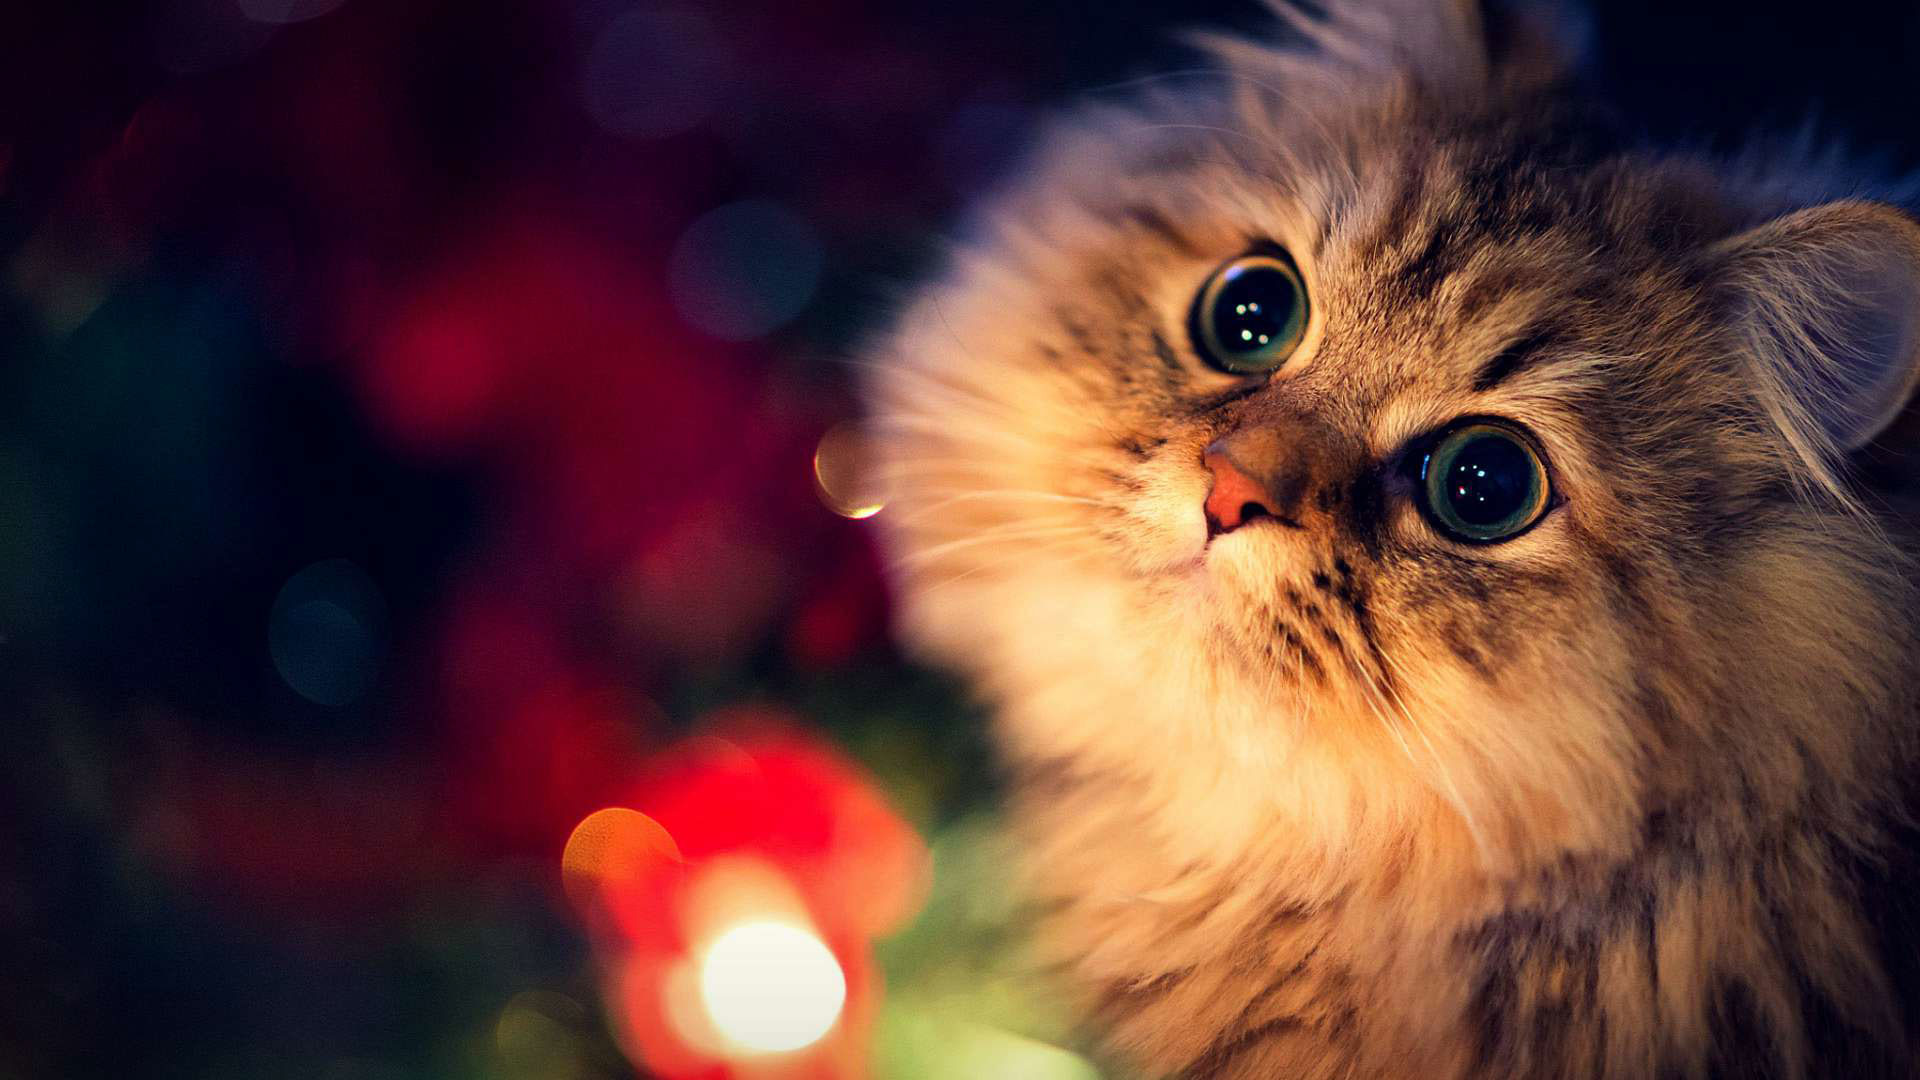 Cute Kitty Wallpapers Download Cute Hd Wallpapers For Desktop 73 Images